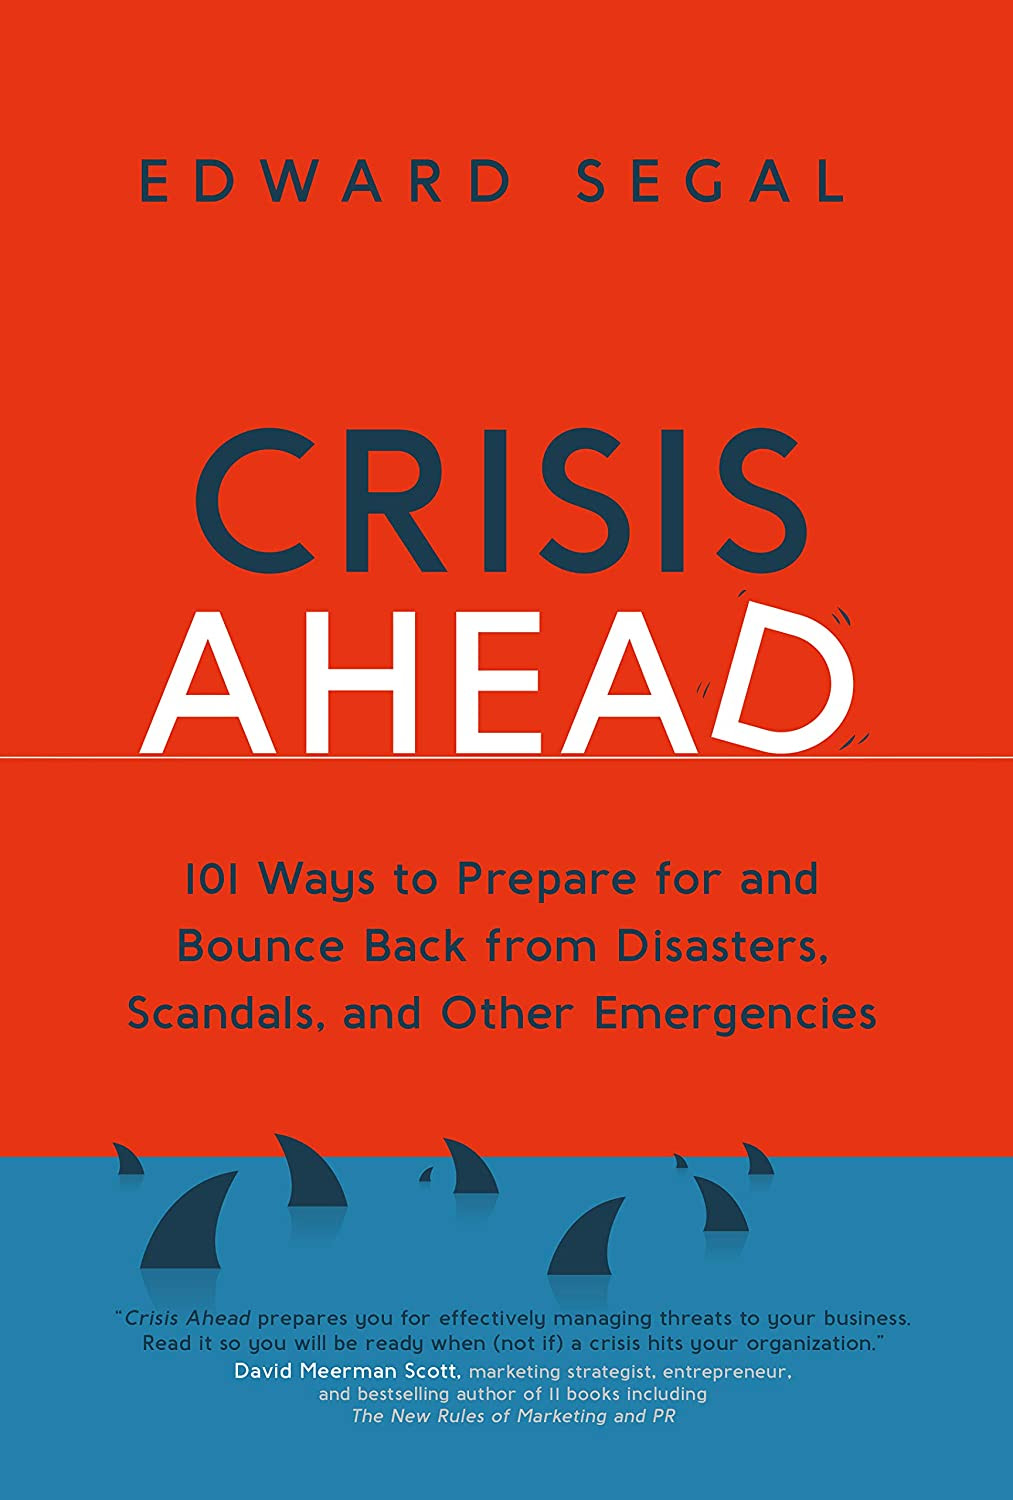 Edward Segal, Crisis Management Expert